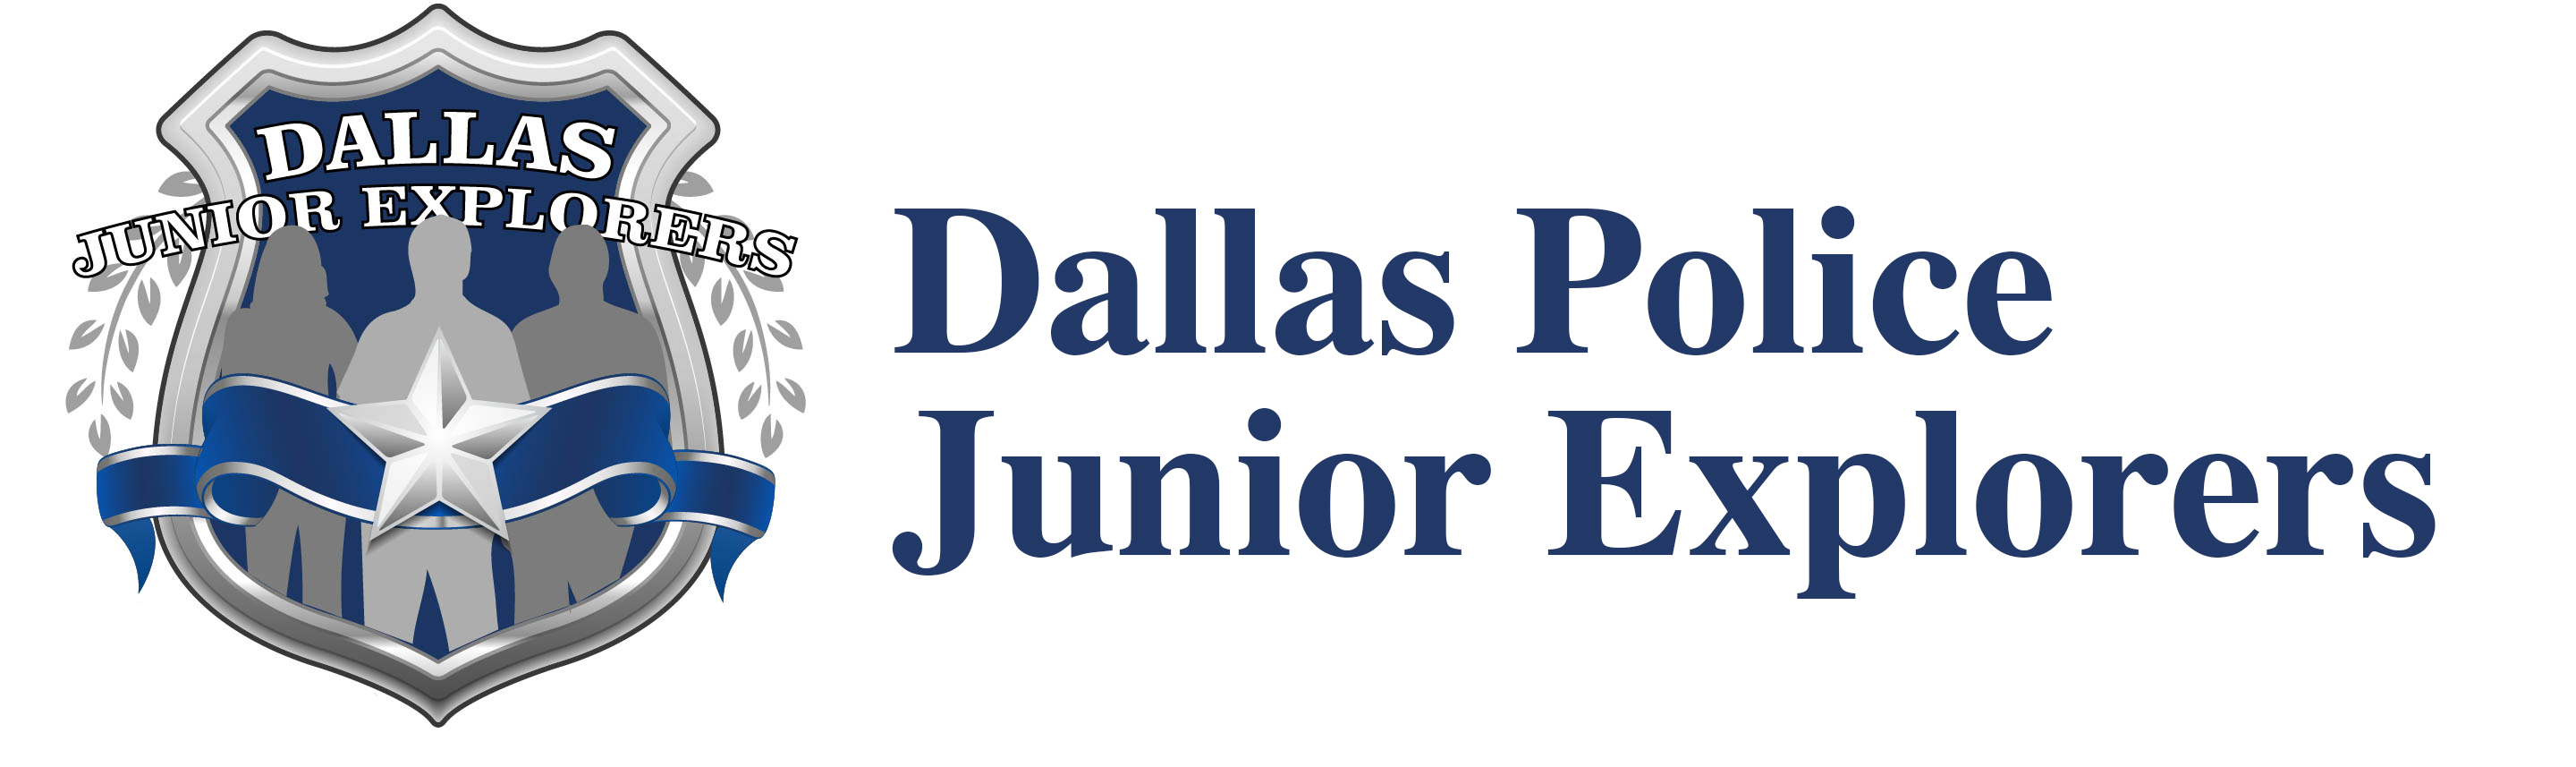 Dallas Junior Explorers